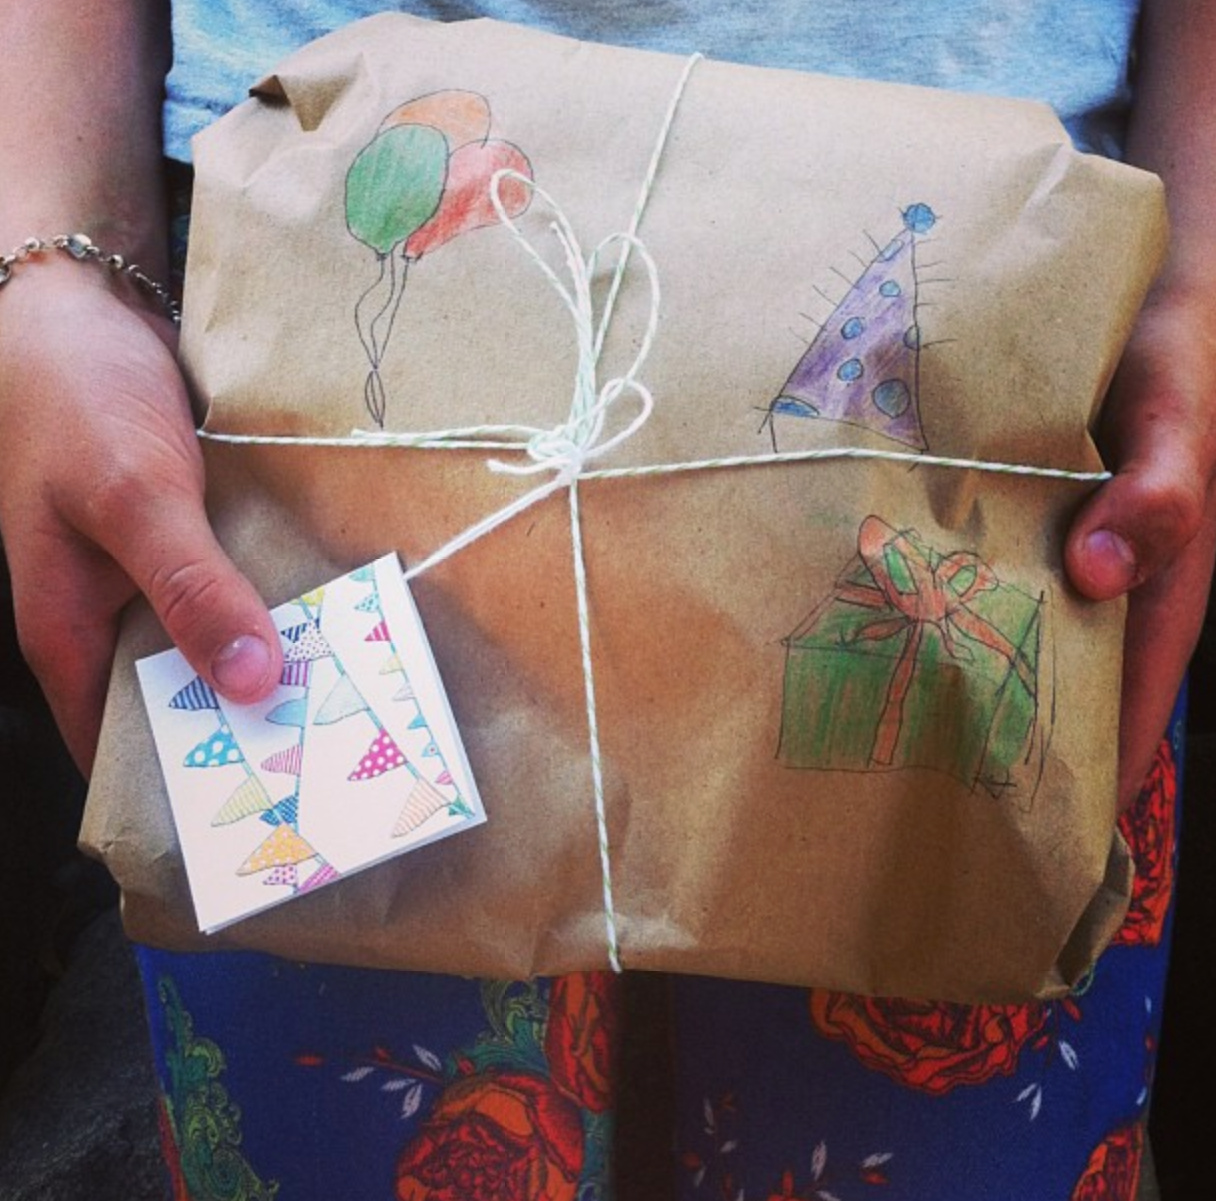 make your own wrapping paper - draw pictures on brown paper